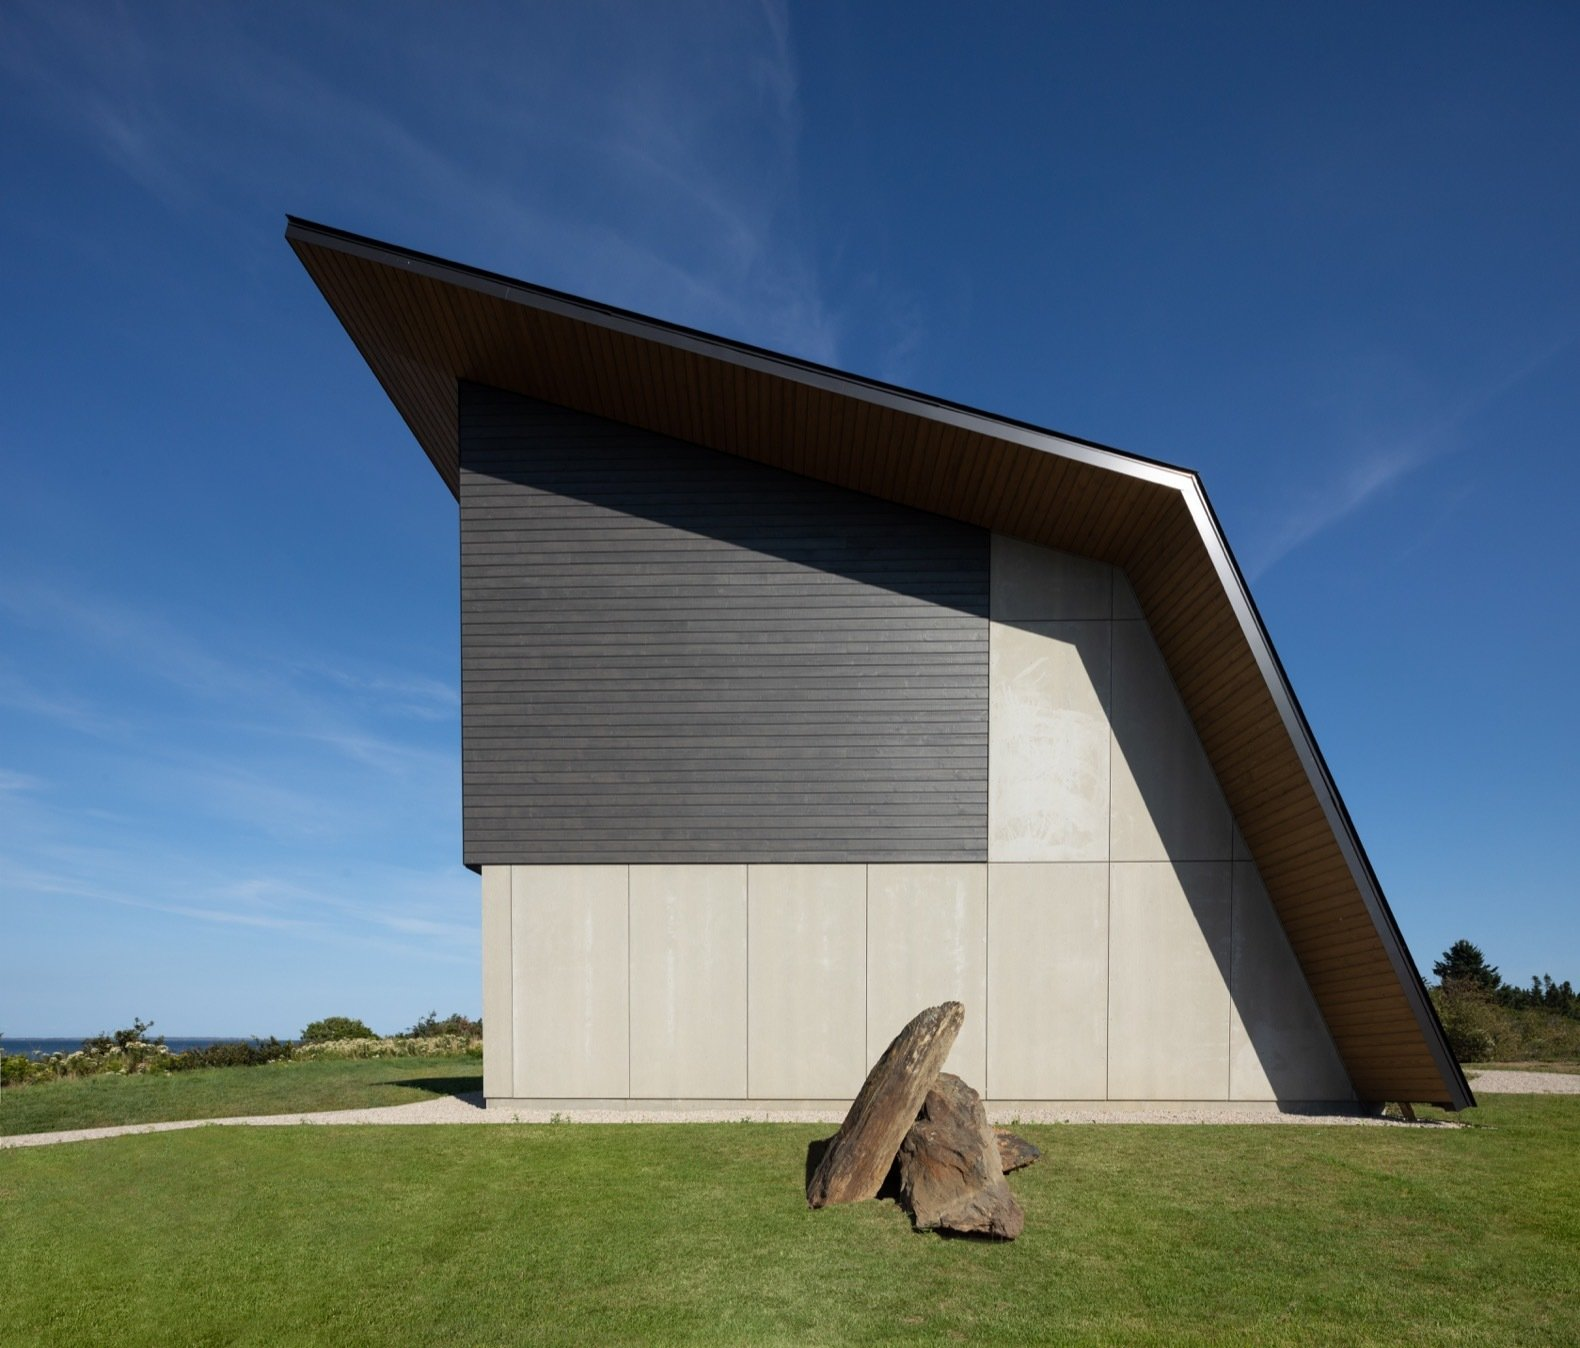 Exterior, Metal Siding Material, Wood Siding Material, House Building Type, Metal Roof Material, Concrete Siding Material, and Saltbox RoofLine In contrast to its heavily glazed north facade, the home's other three sides are closed off from view for privacy.  Photos from A Folded Steel Roof Shields a Fortress-Like Abode in Nova Scotia